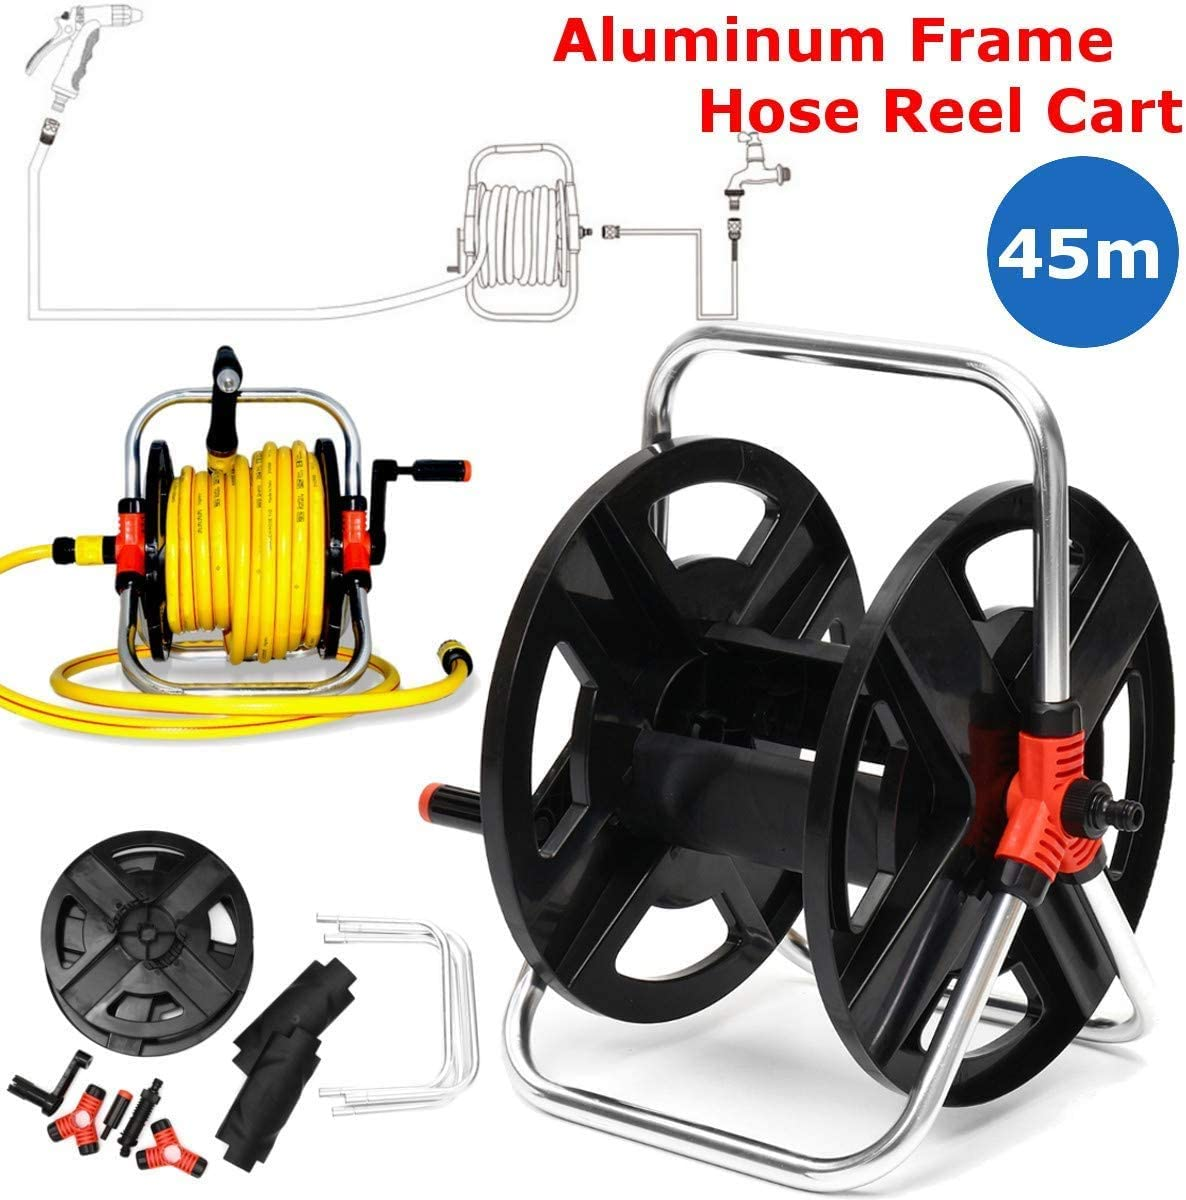 Portable Hose Cart Water Pipe Storage Rack Hose Reels Garden Watering Tool Accessories,Holds 45M of 1/2 Inch Hose